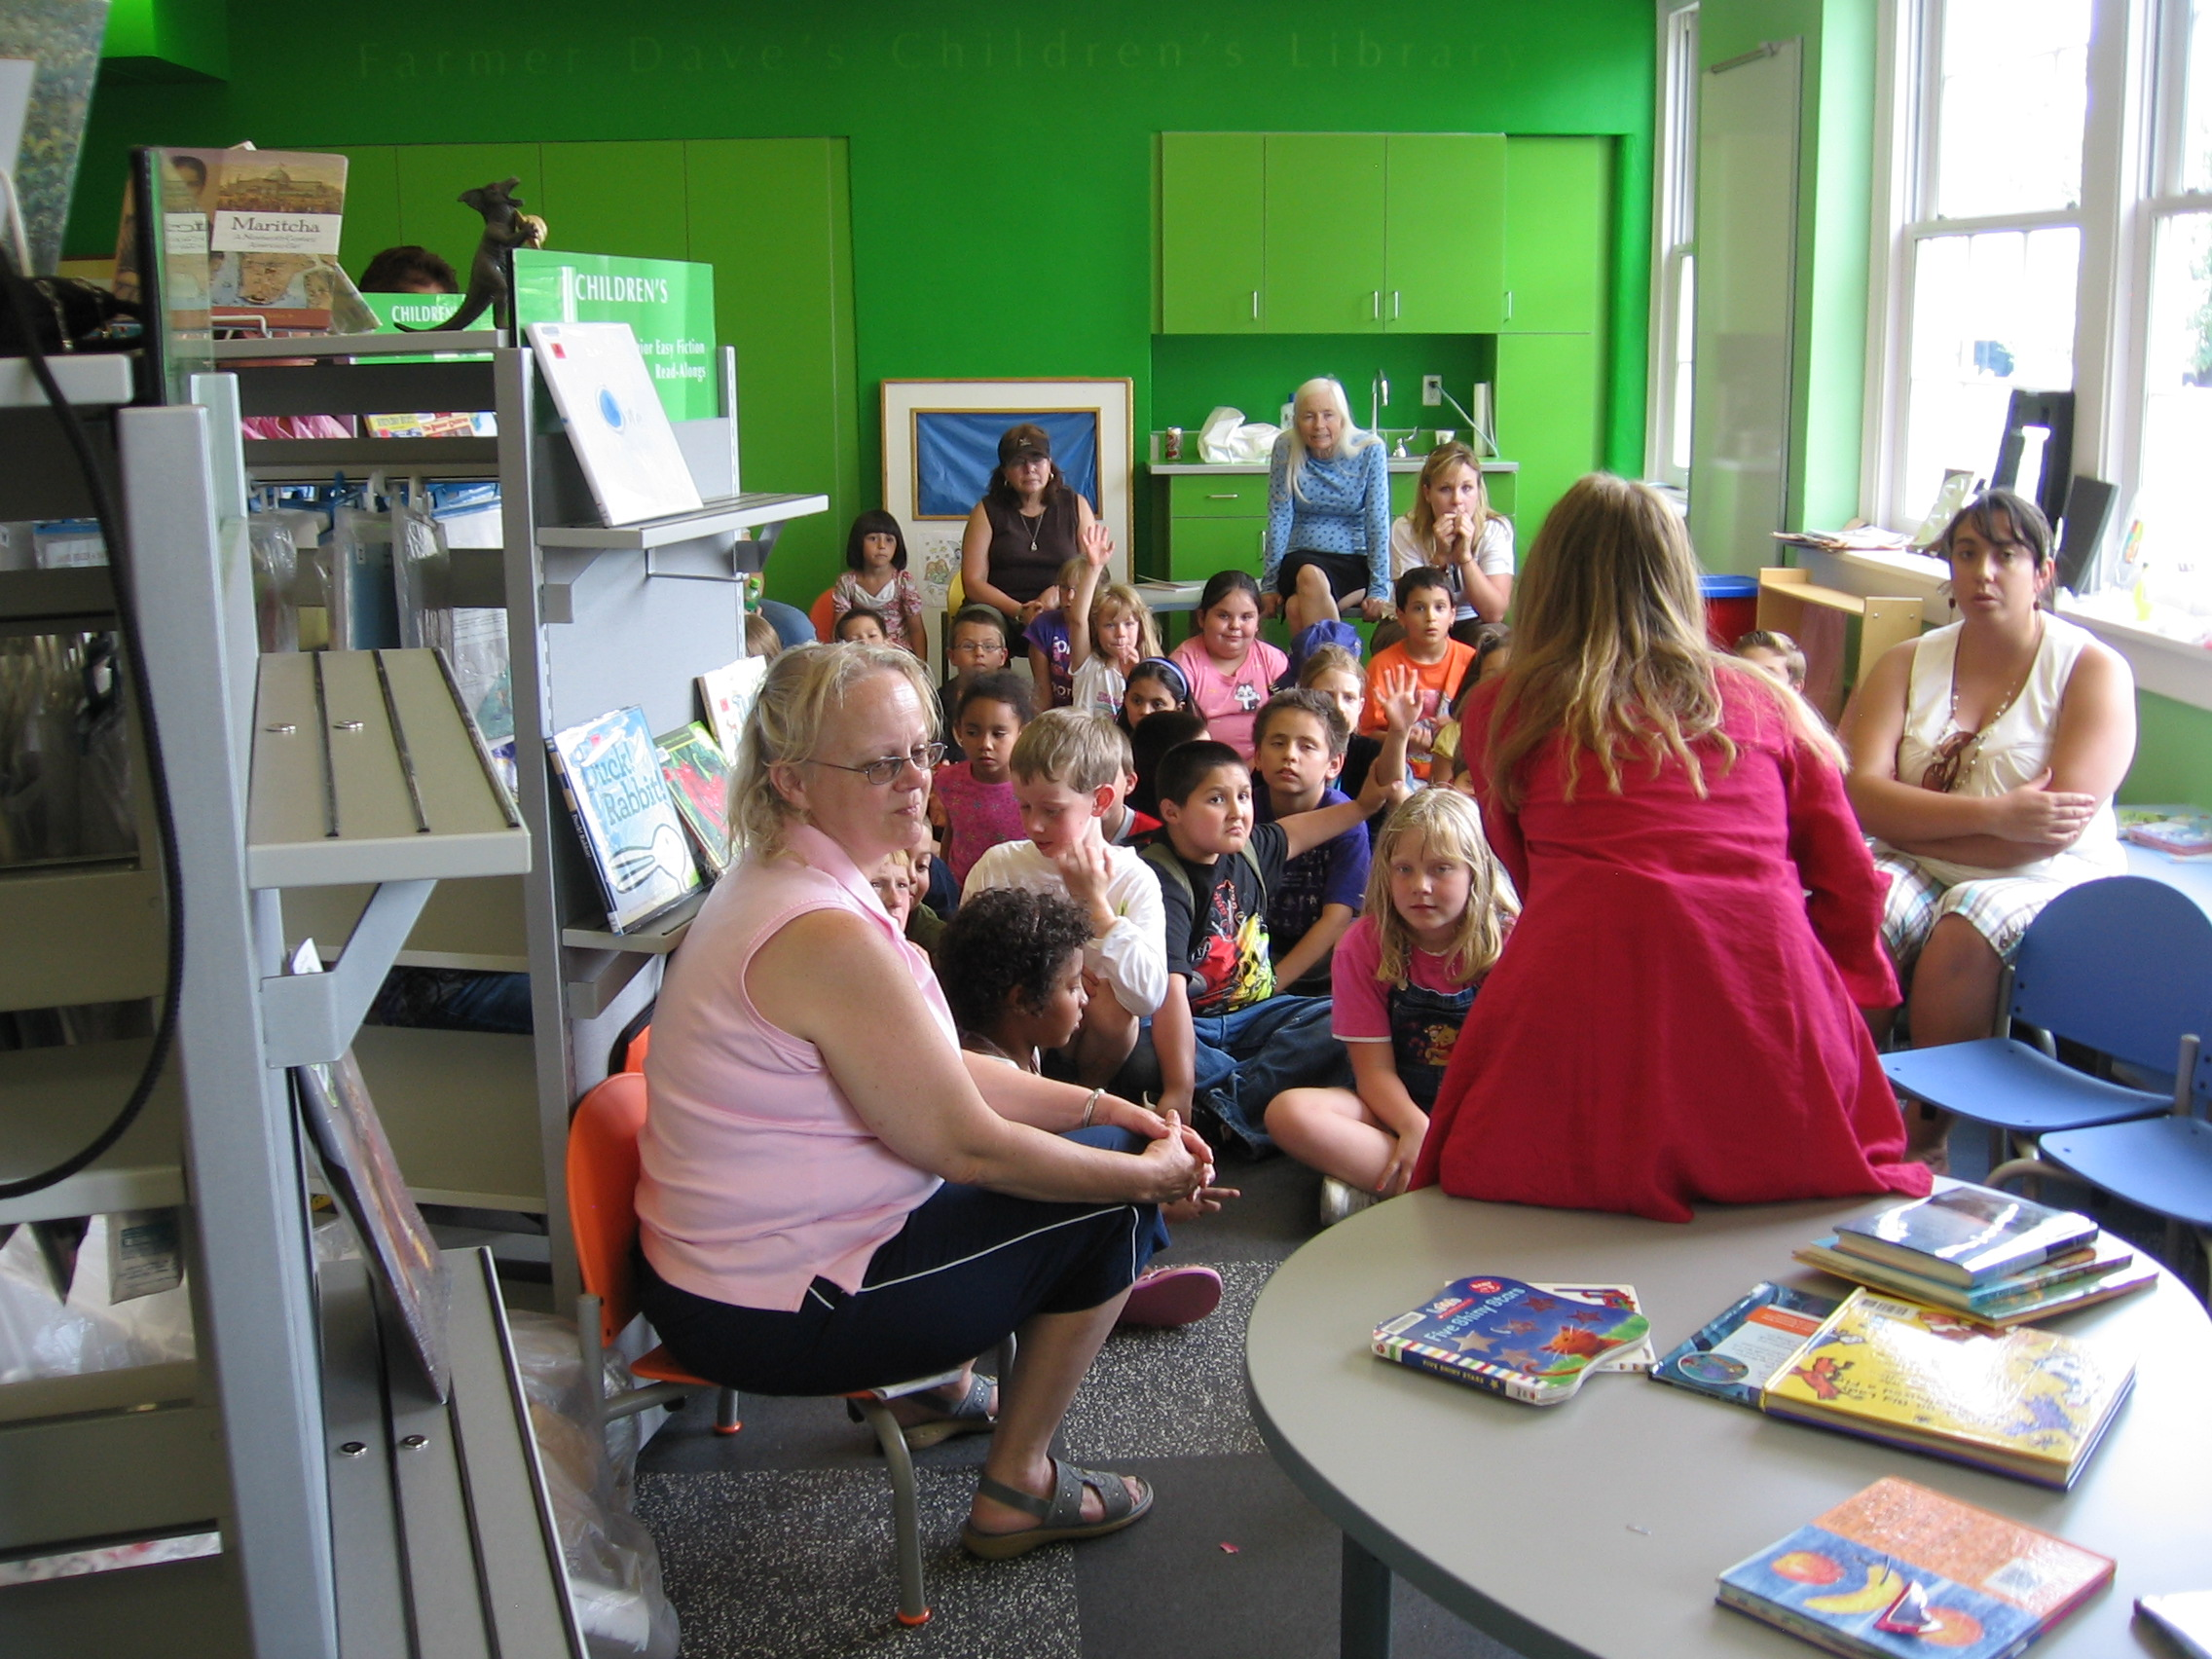 Susan Tweit, author, reading to the children